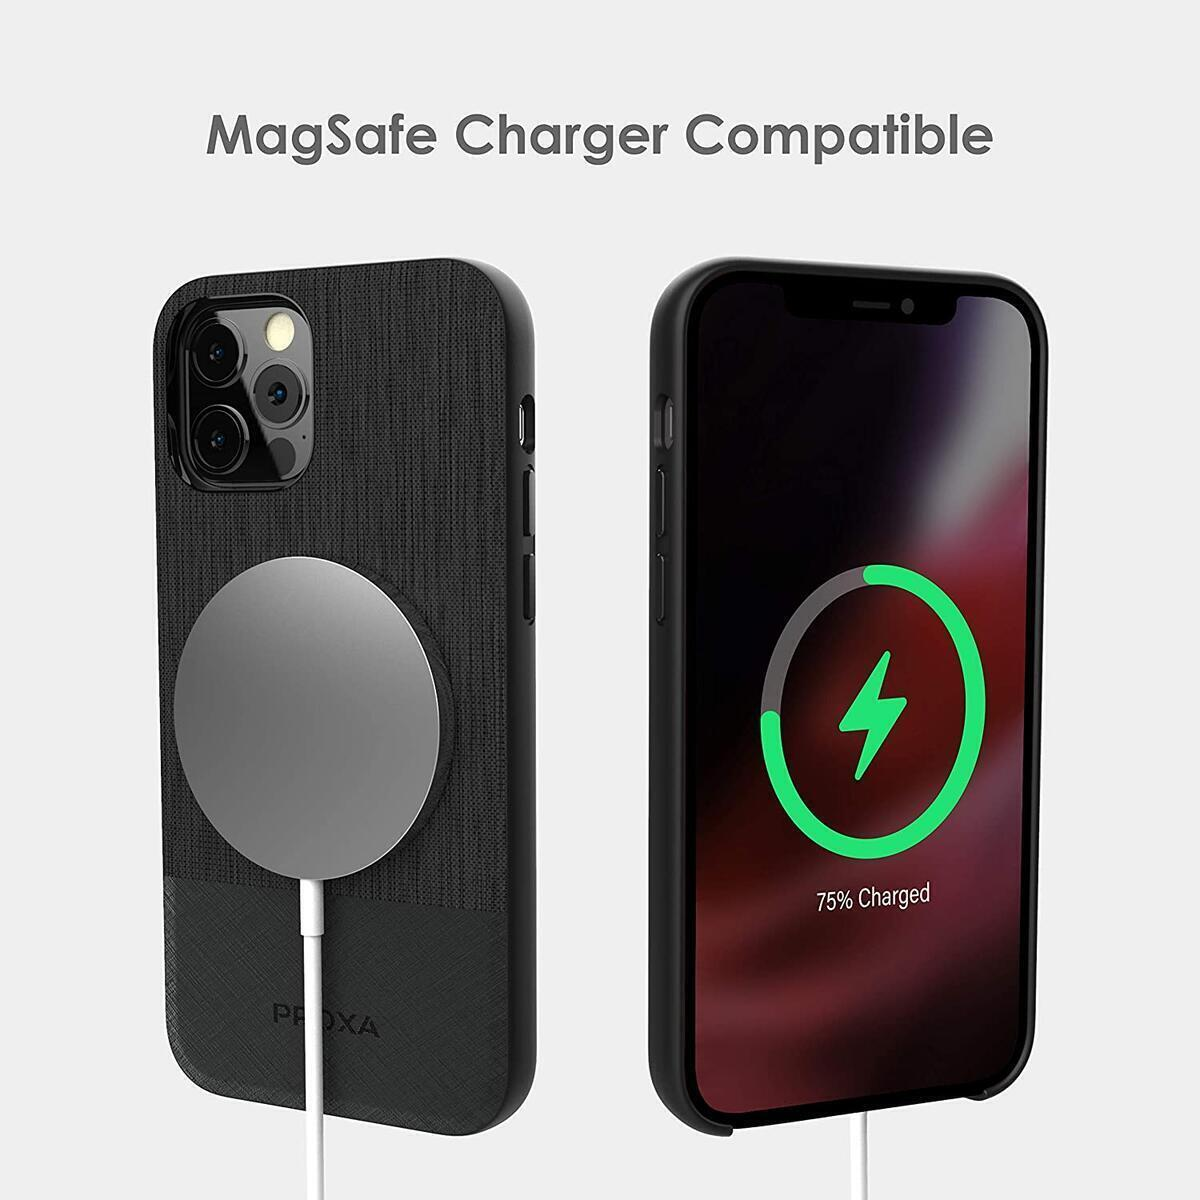 PROXA Magnetic Wireless Car Charger with 6.7 inch Case Designed for iPhone 12 Pro Max[MagSafe Compatible]&Dual Installation Mount&Dual Port QC 3.0 Car Adapter-Compatible with iPhone 12 Pro Max